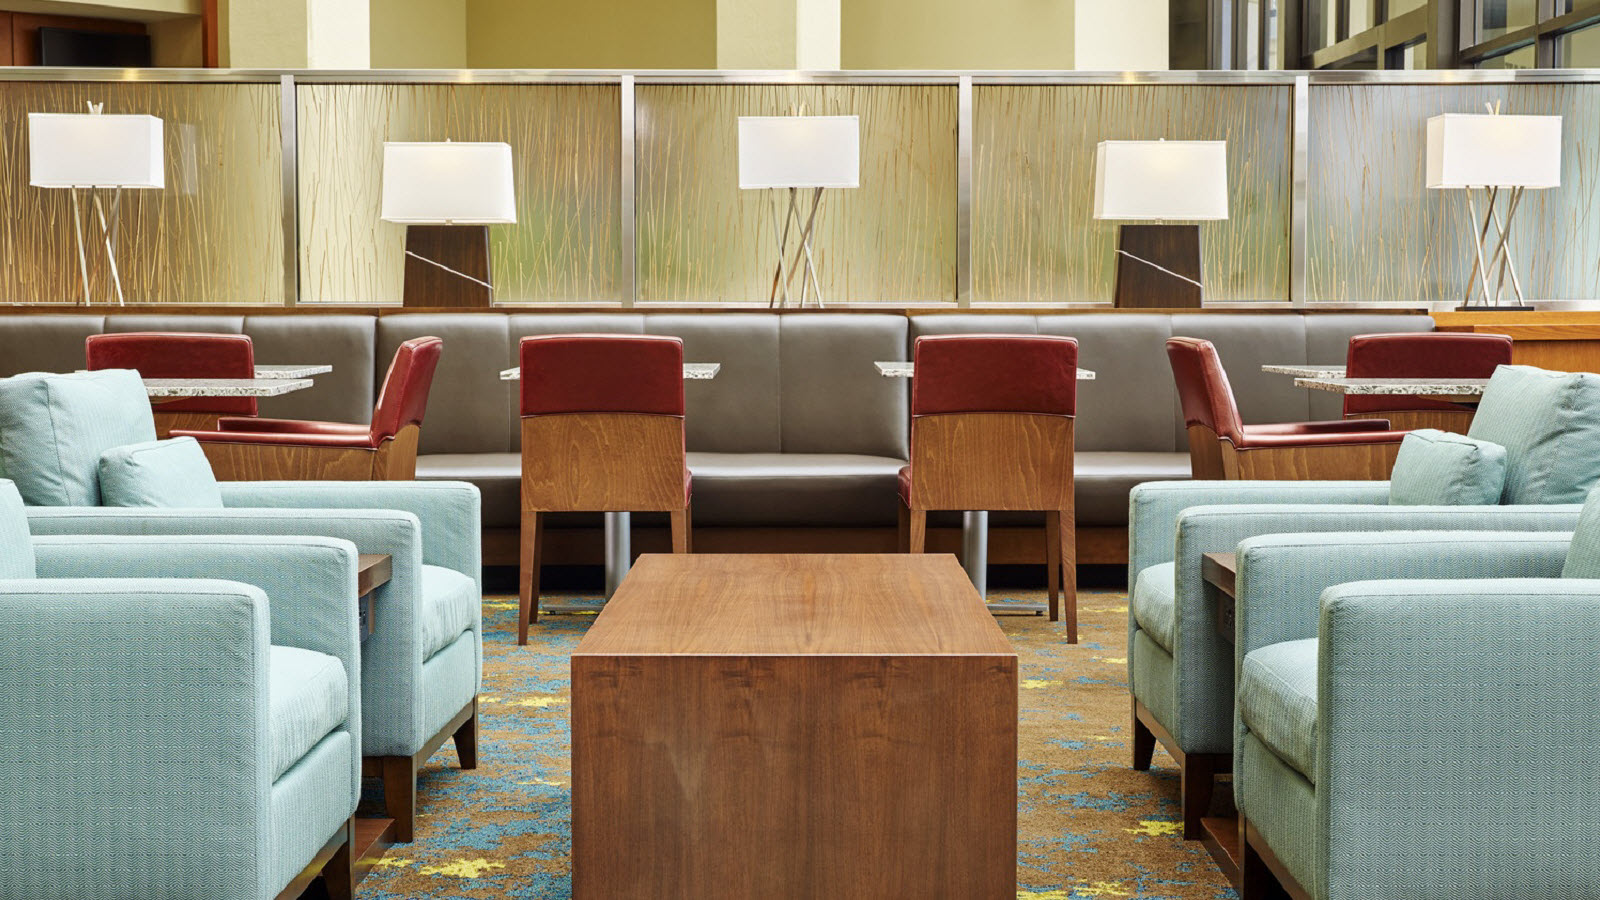 https://www.hotelsbyday.com/_data/default-hotel_image/0/1165/the-westin-atlanta-airport-lobby-sitting-area.jpg